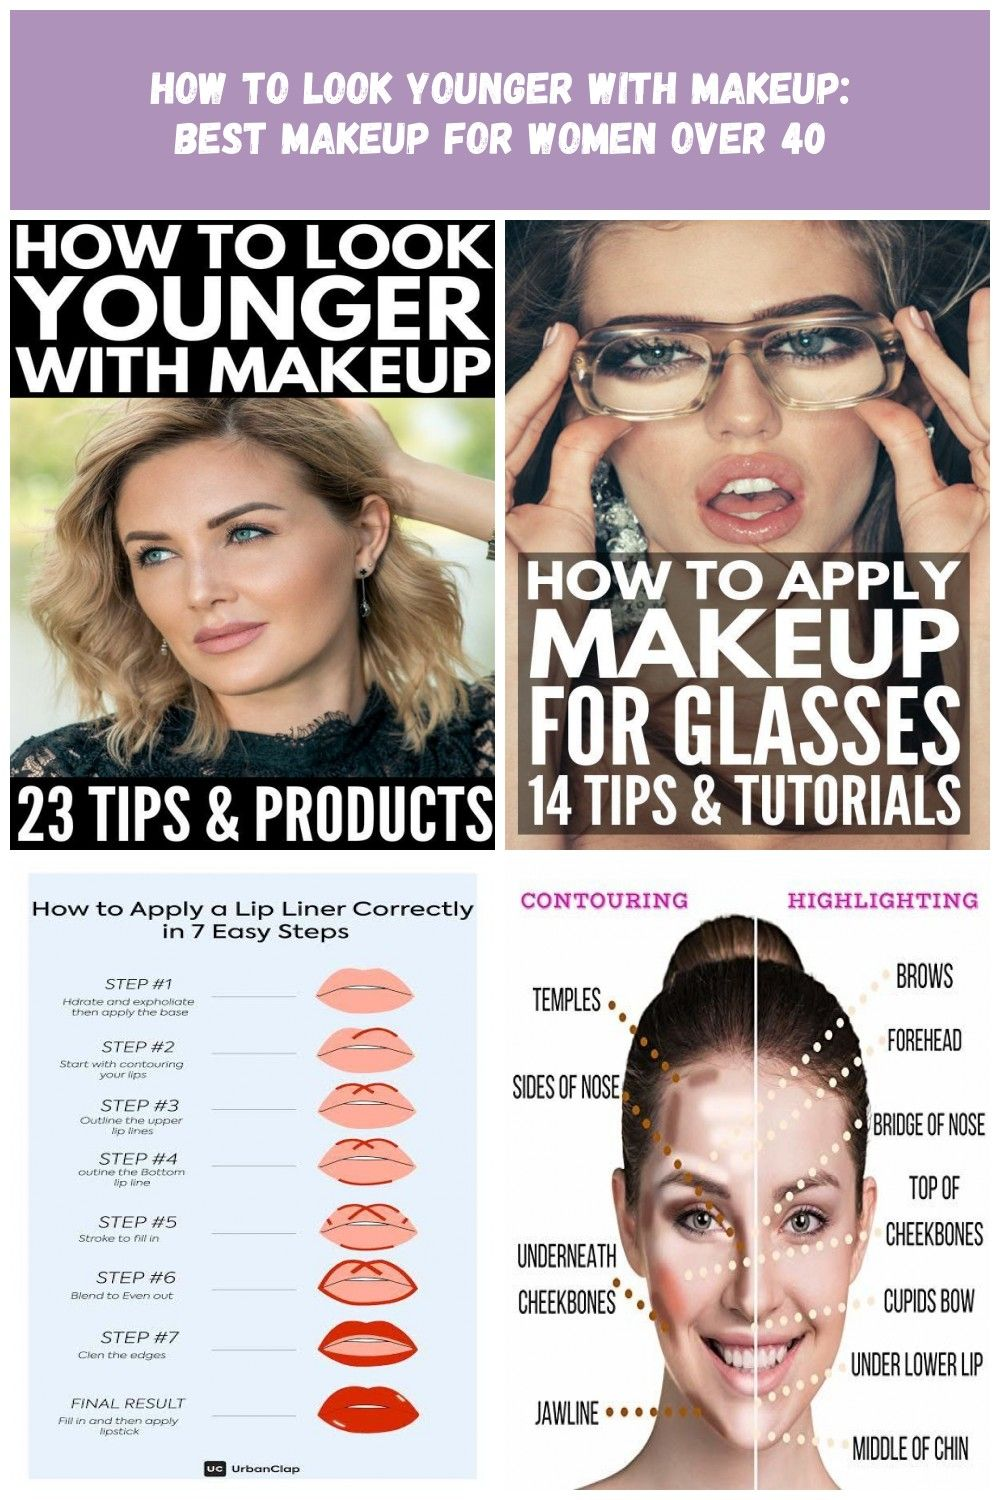 How to Look Younger with Makeup  Look 8 years younger with these